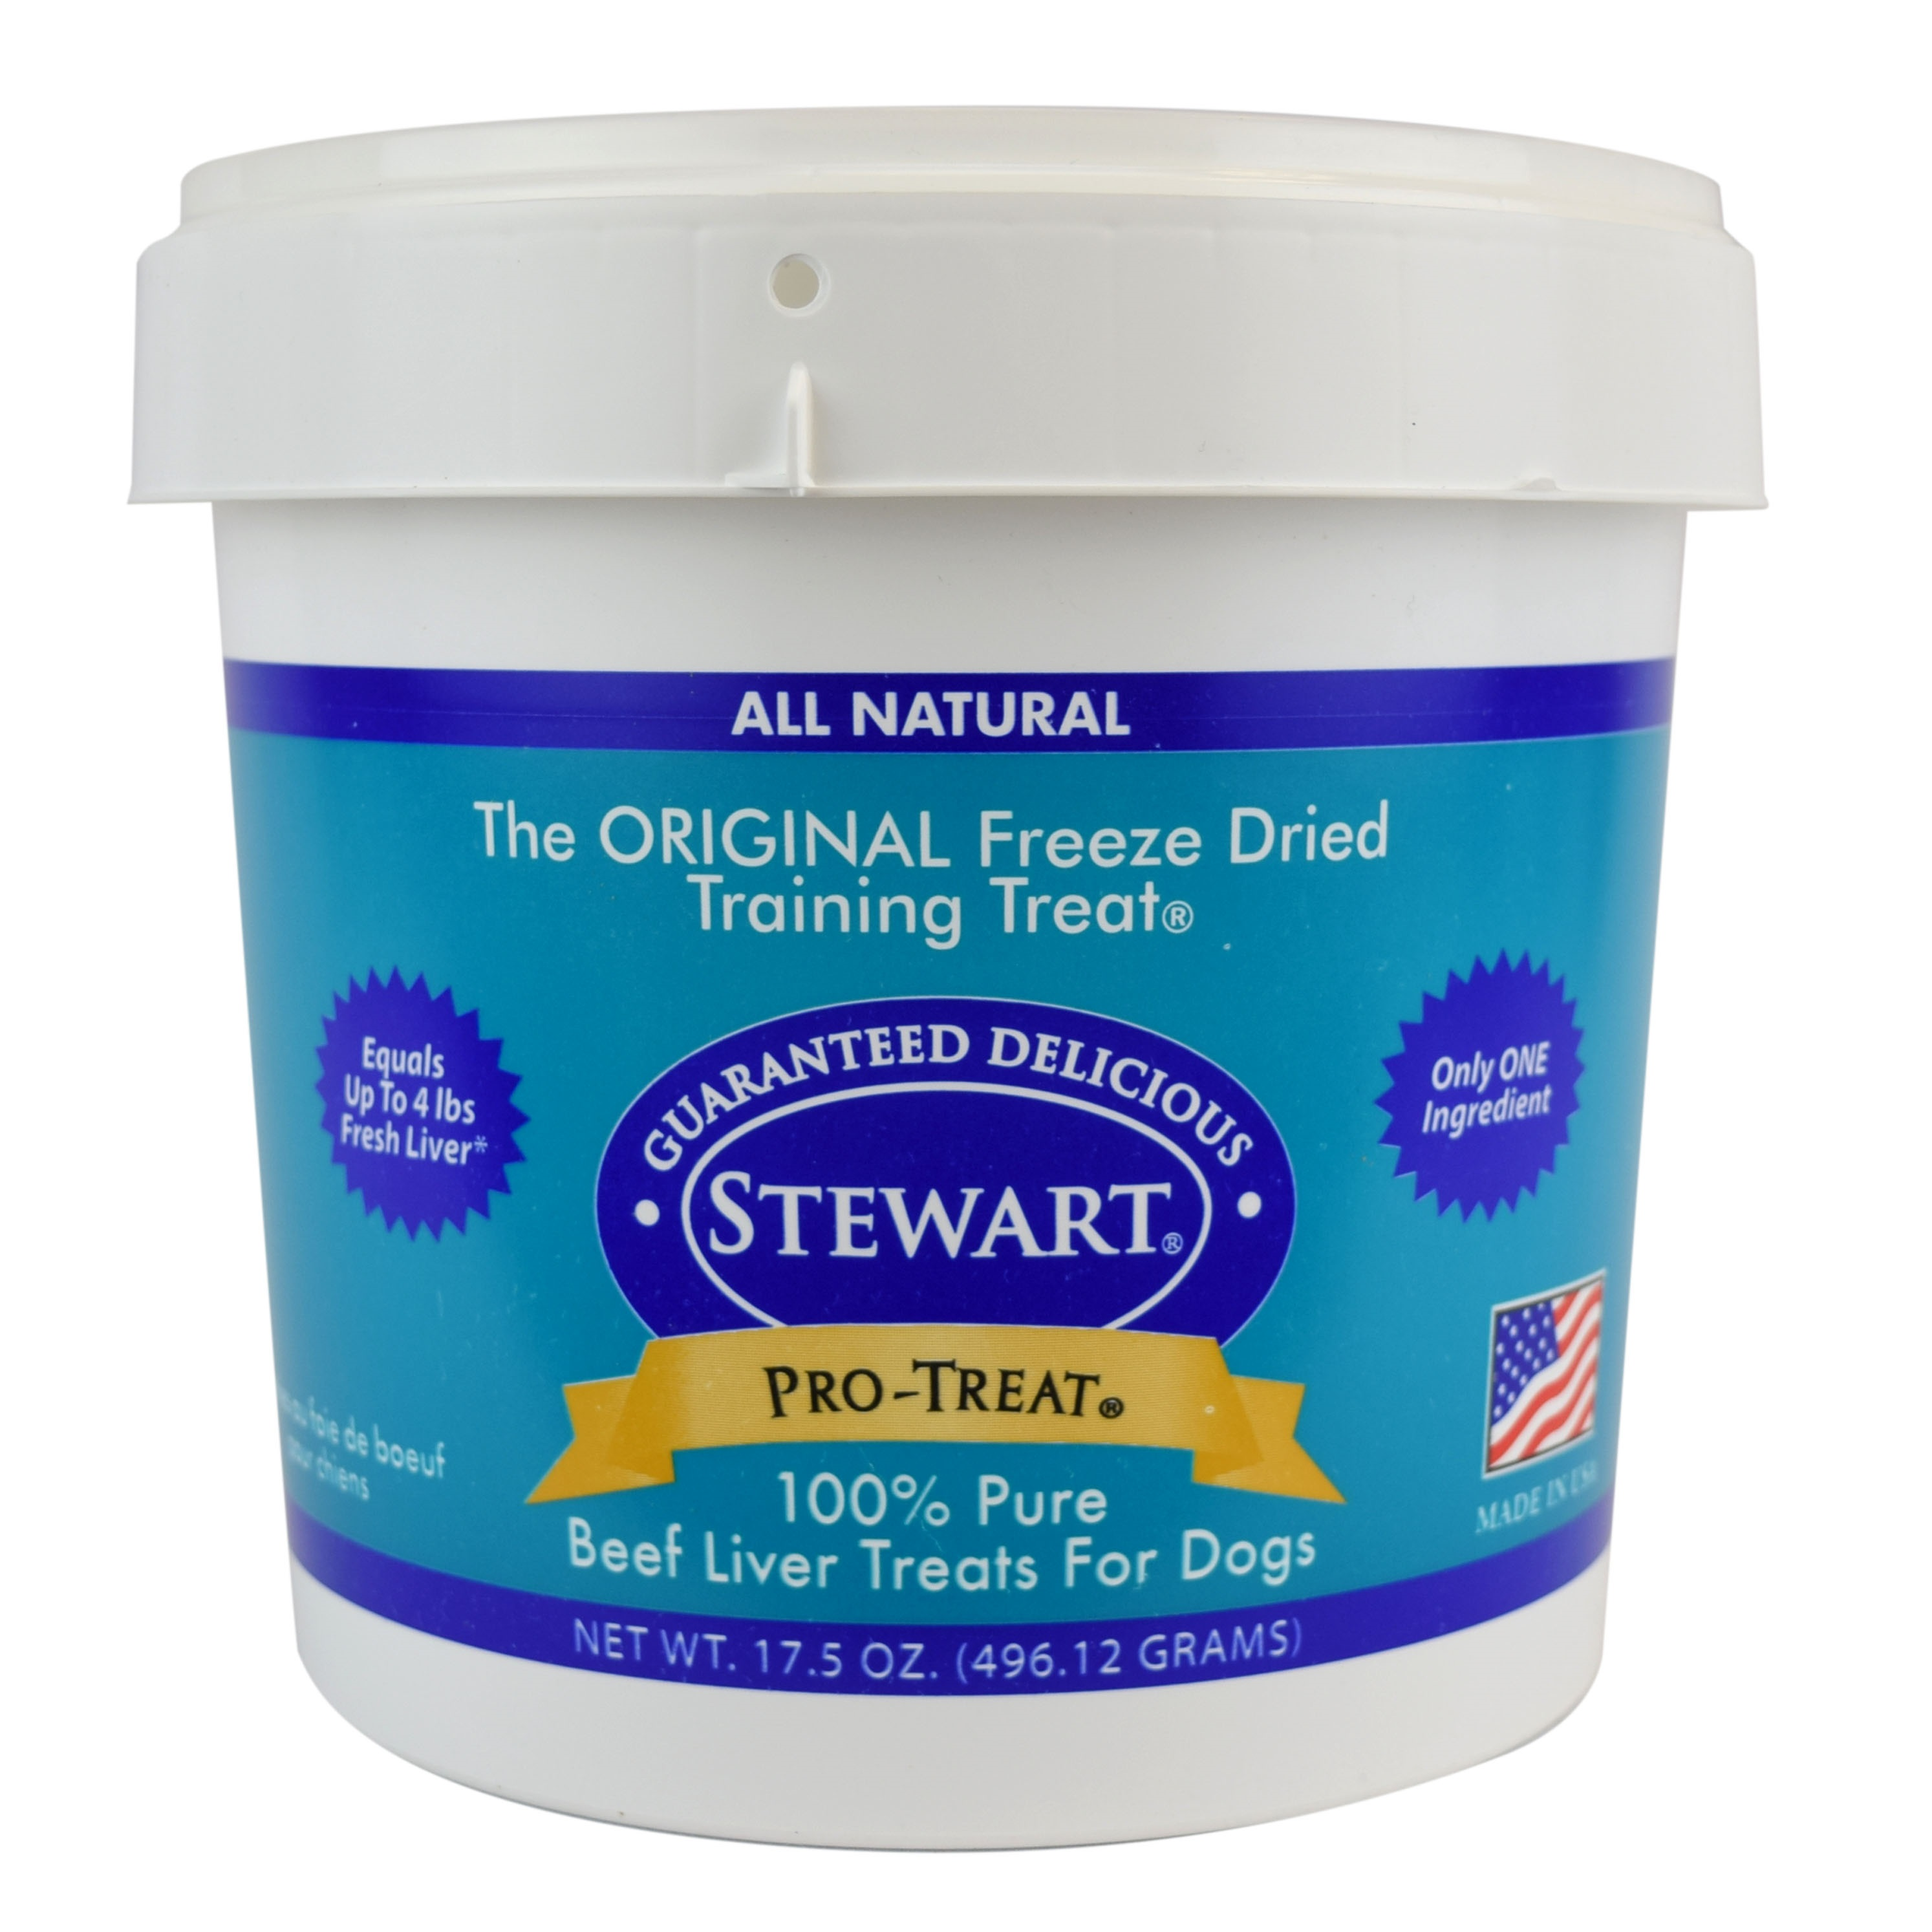 Stewart Freeze Dried Beef Liver by Pro-Treat, 17.5 oz. Tub